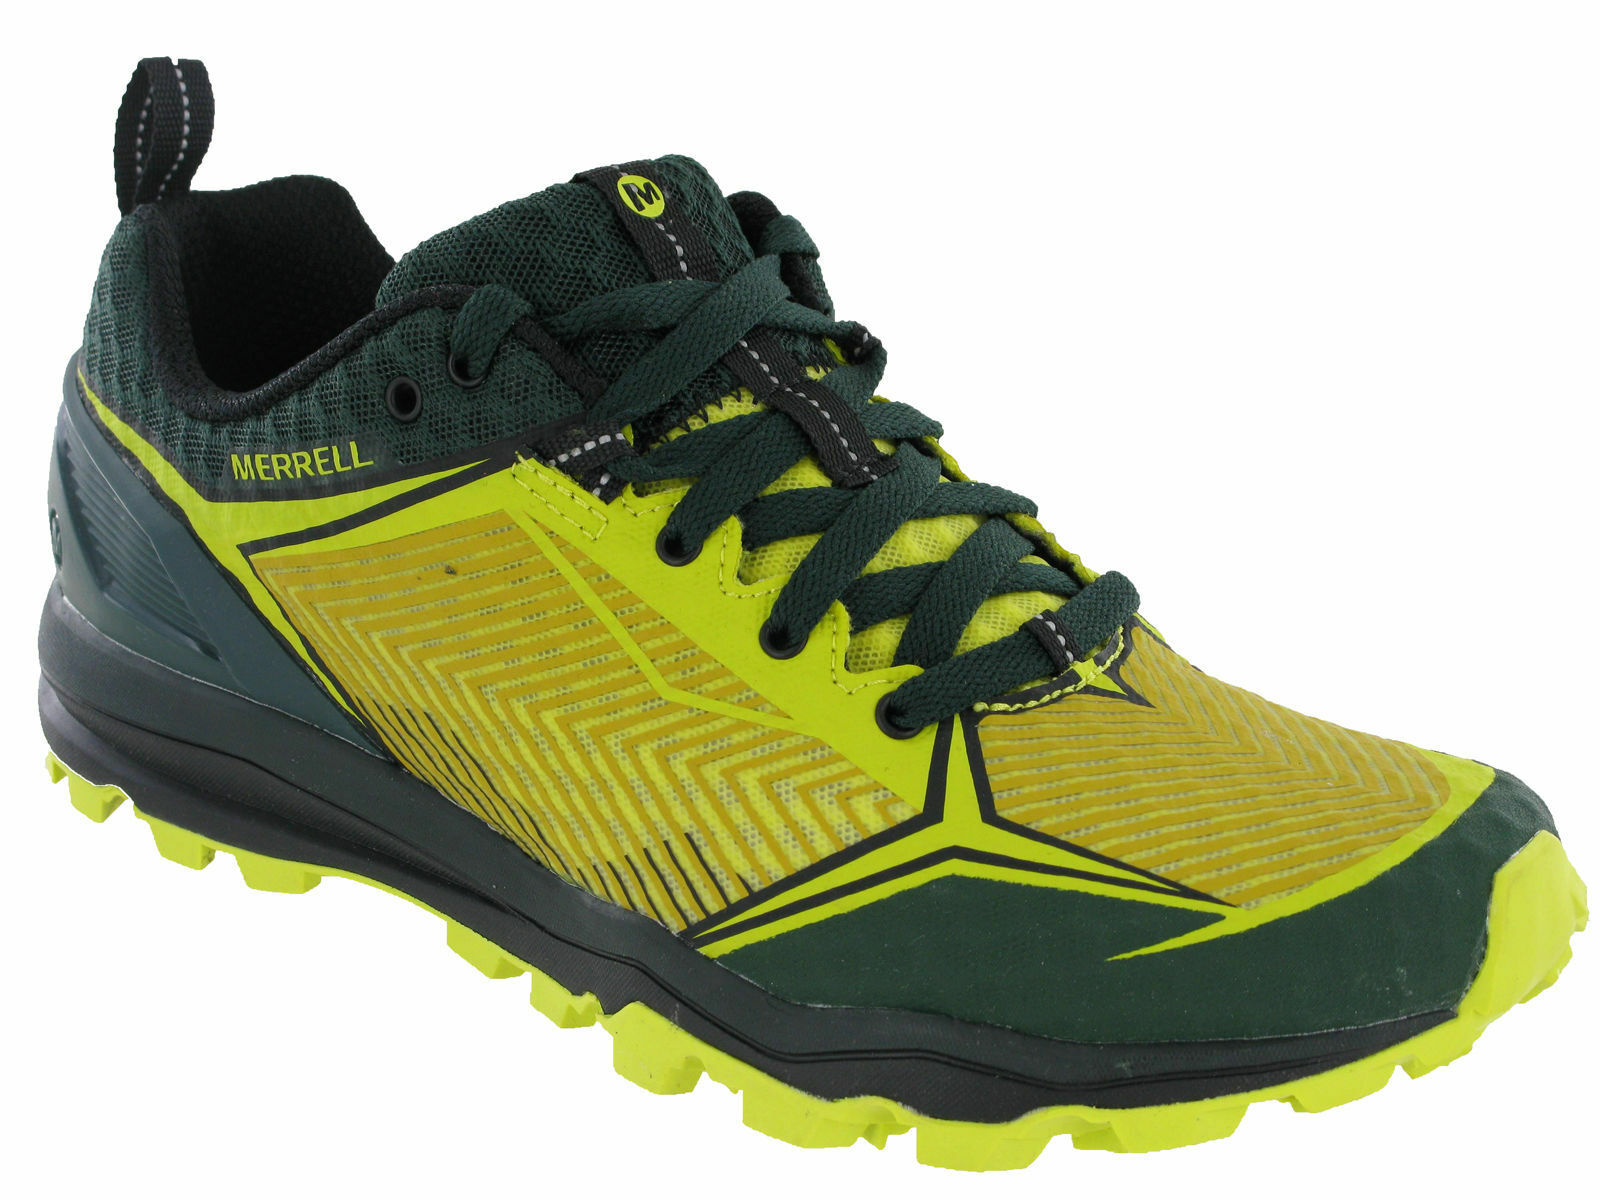 Merrell all out crush shield running hiking mens shoes green  j35853  great offers